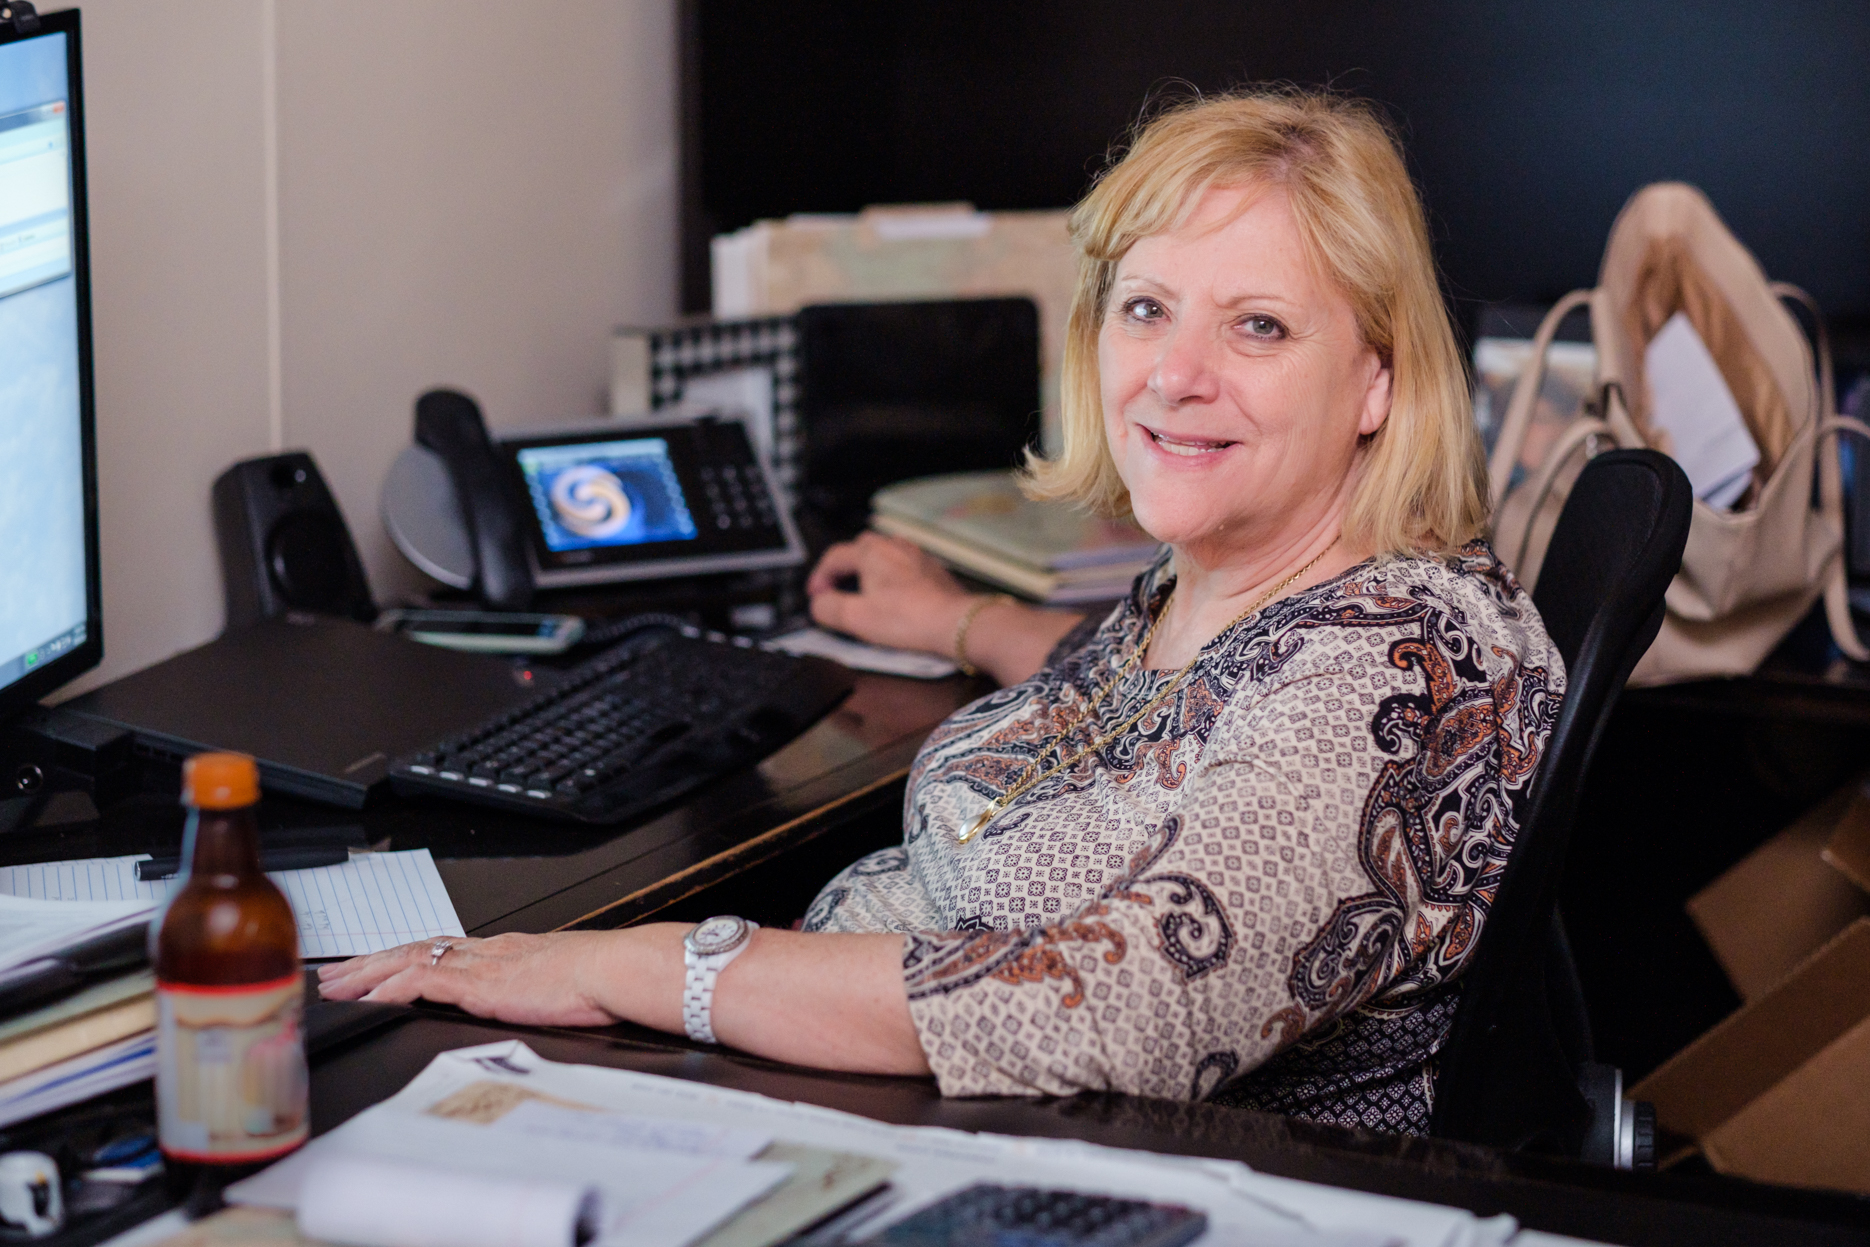 Maintex President Linda Silverman works at her desk.